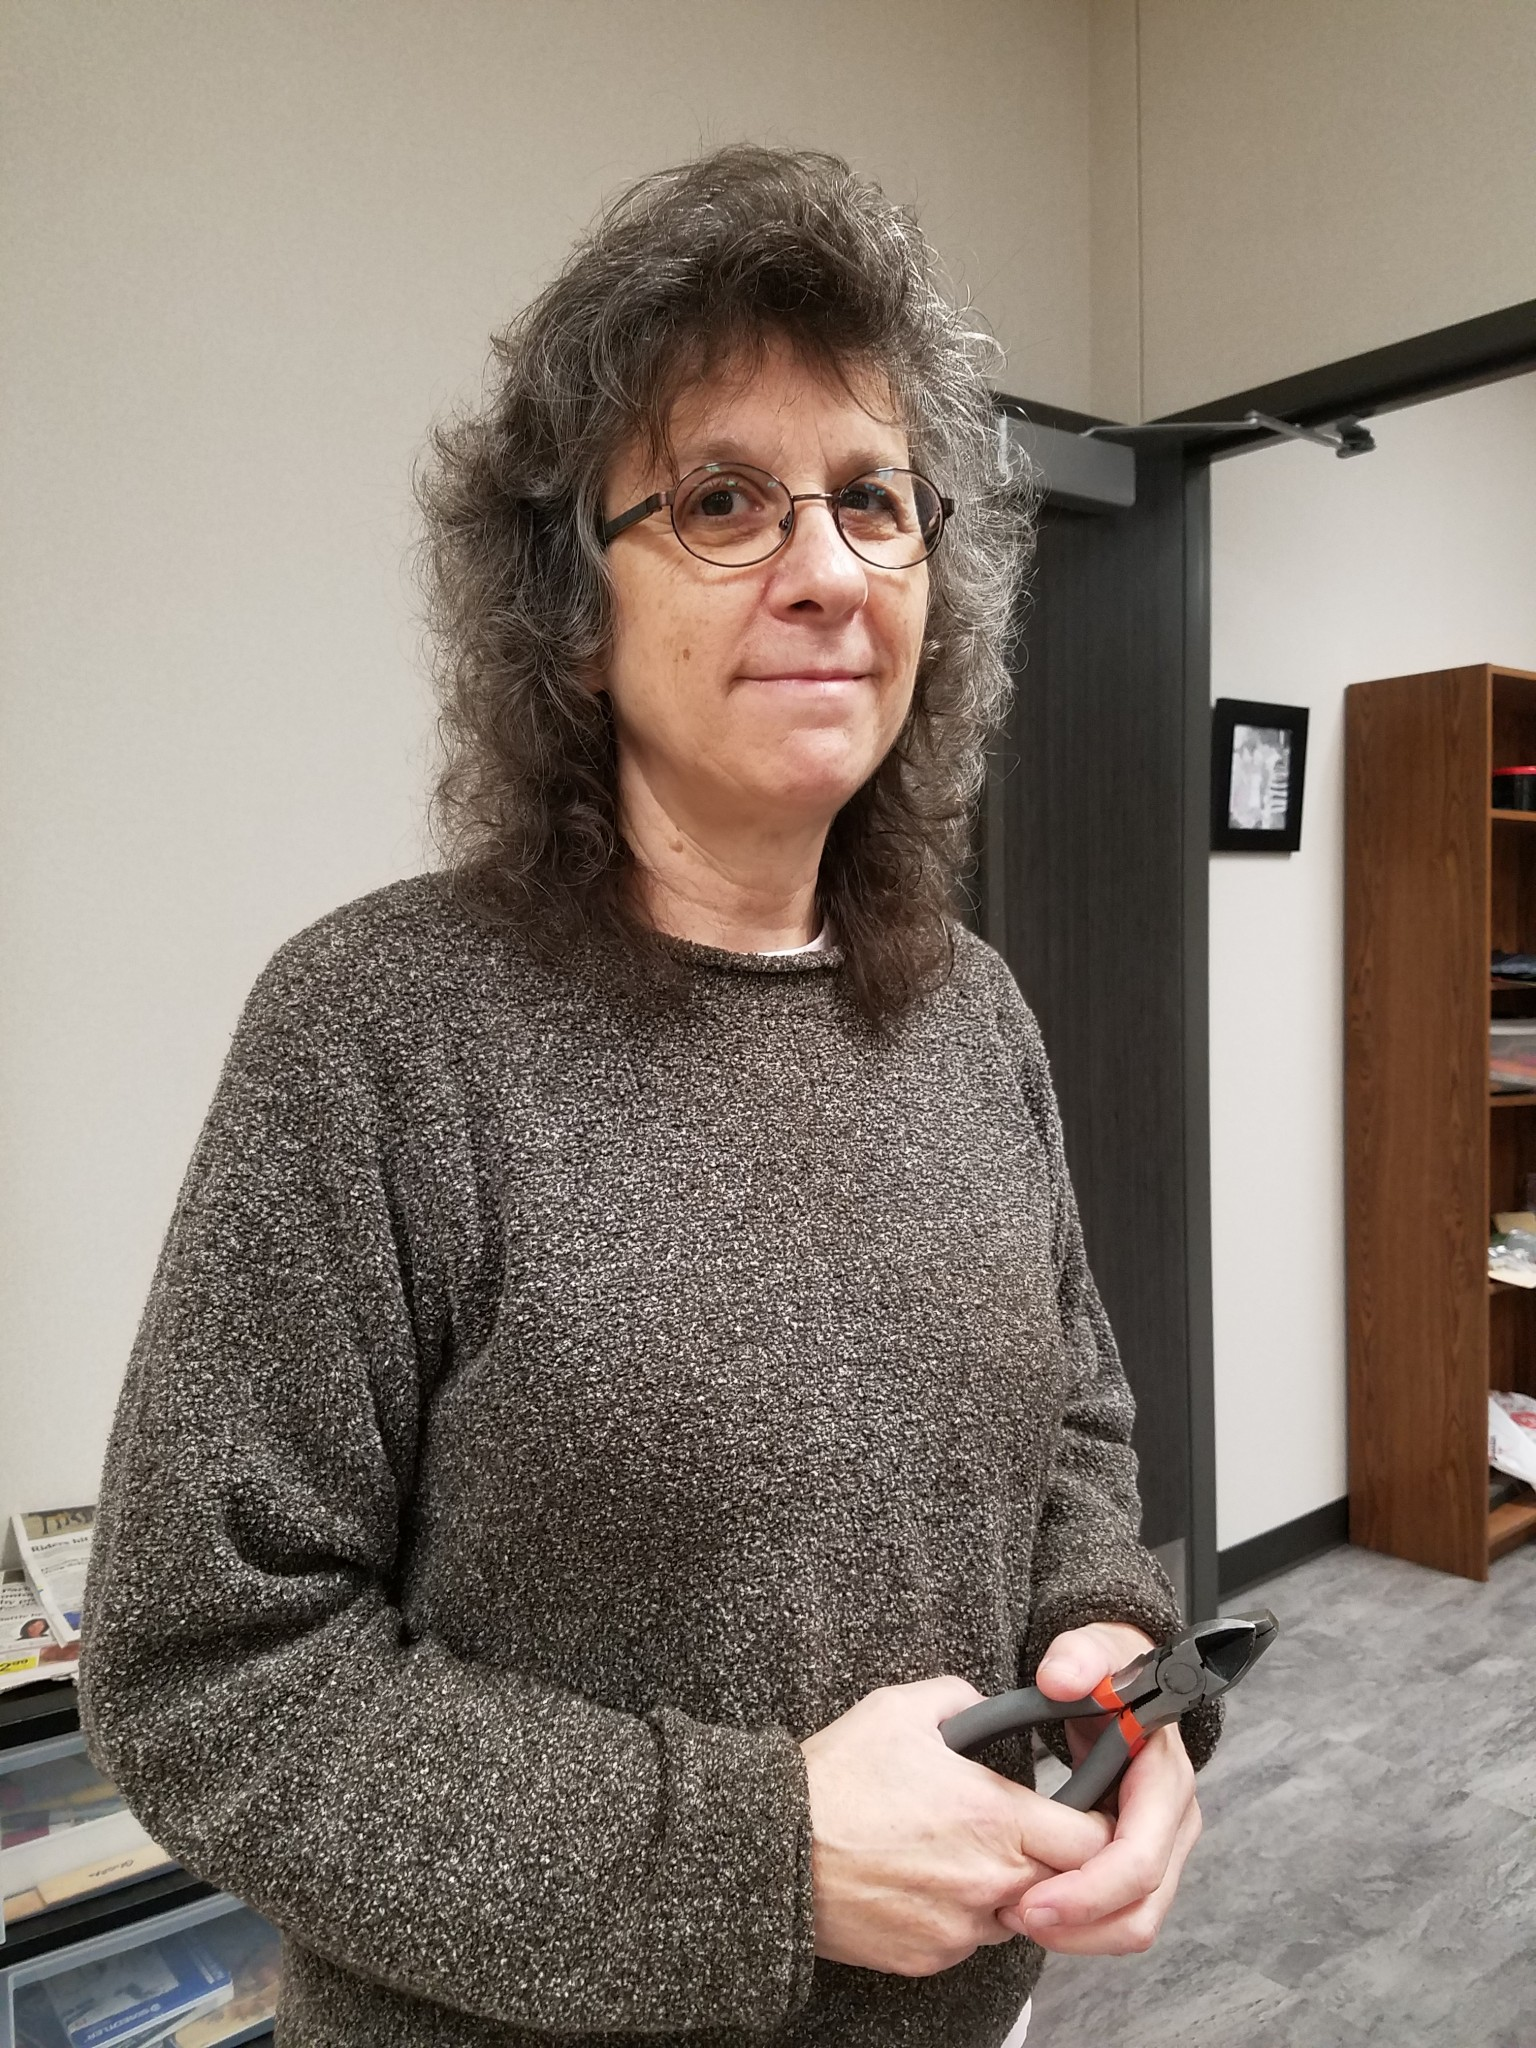 """LISA CANORRO (2-D ART TEACHER) """"Over Thanksgiving Break, I plan to get together with family and friends, and I also plan to work on my artwork and do some stuff around the house. That's pretty much it. Get some sleep!"""""""